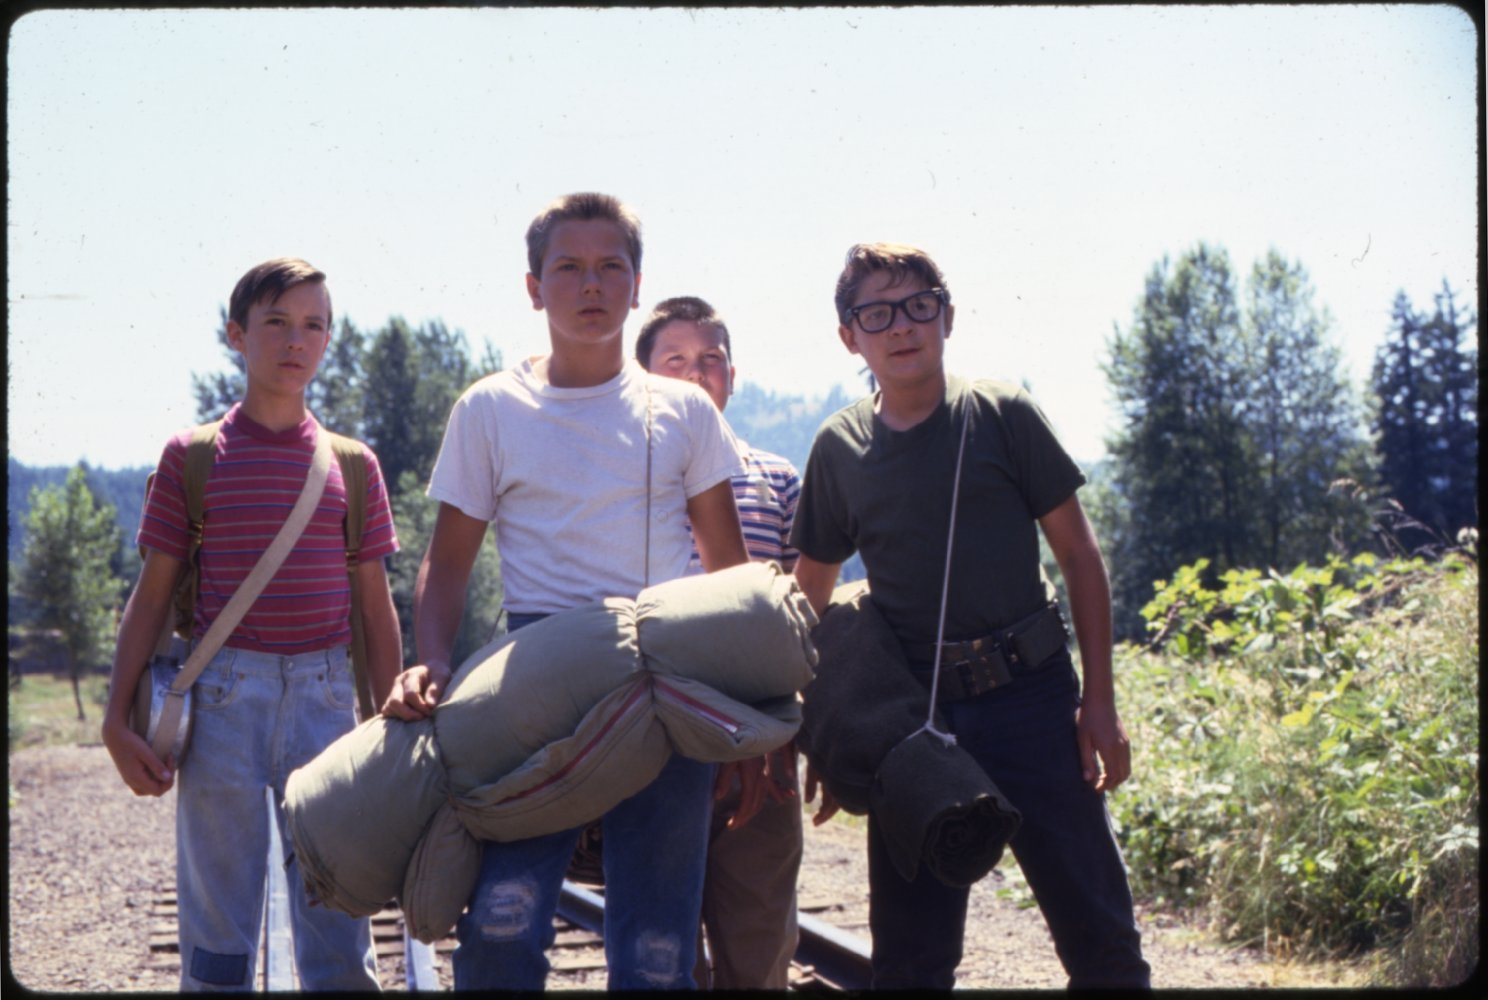 Stand By Me 30th anniversary: 15 things you may not know about the movie